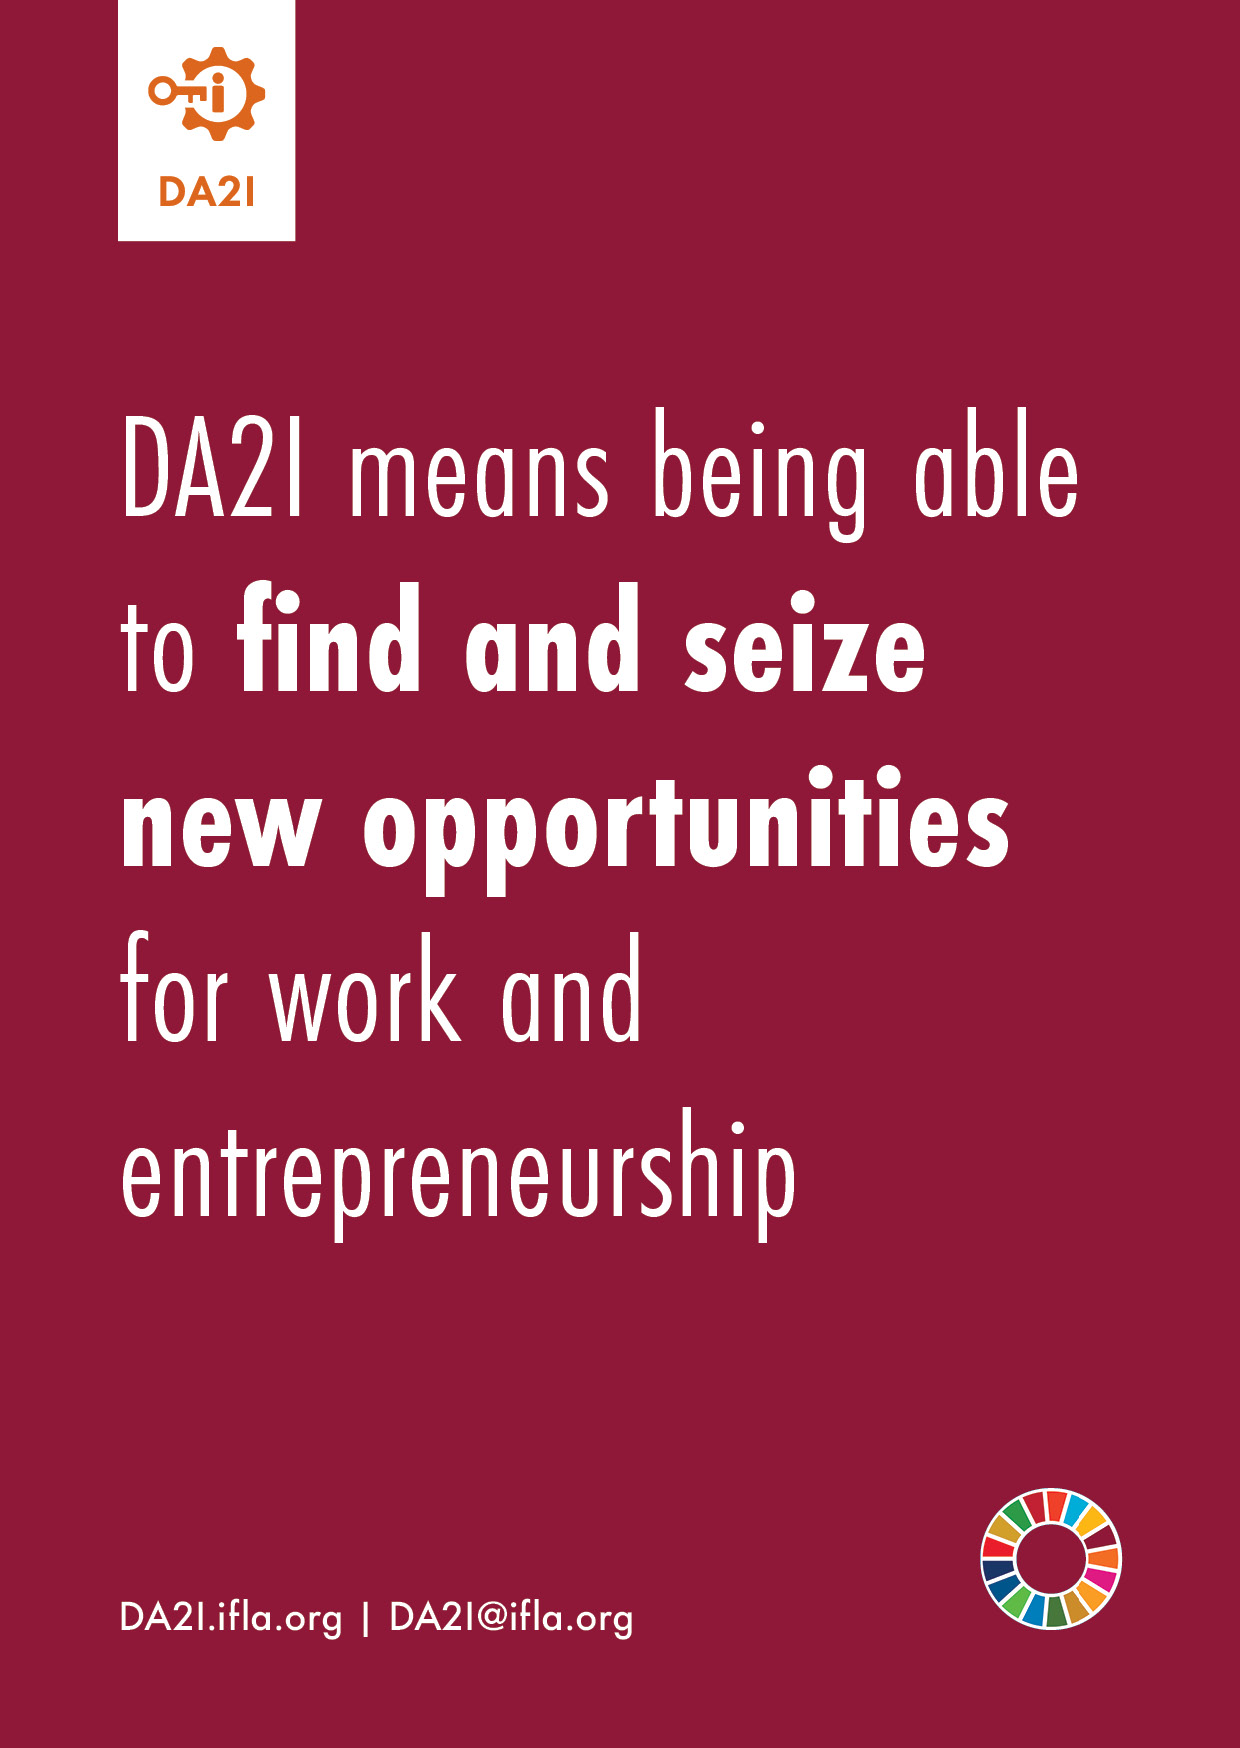 DA2I means being able to find – and seize – new opportunities for work and entrepreneurship